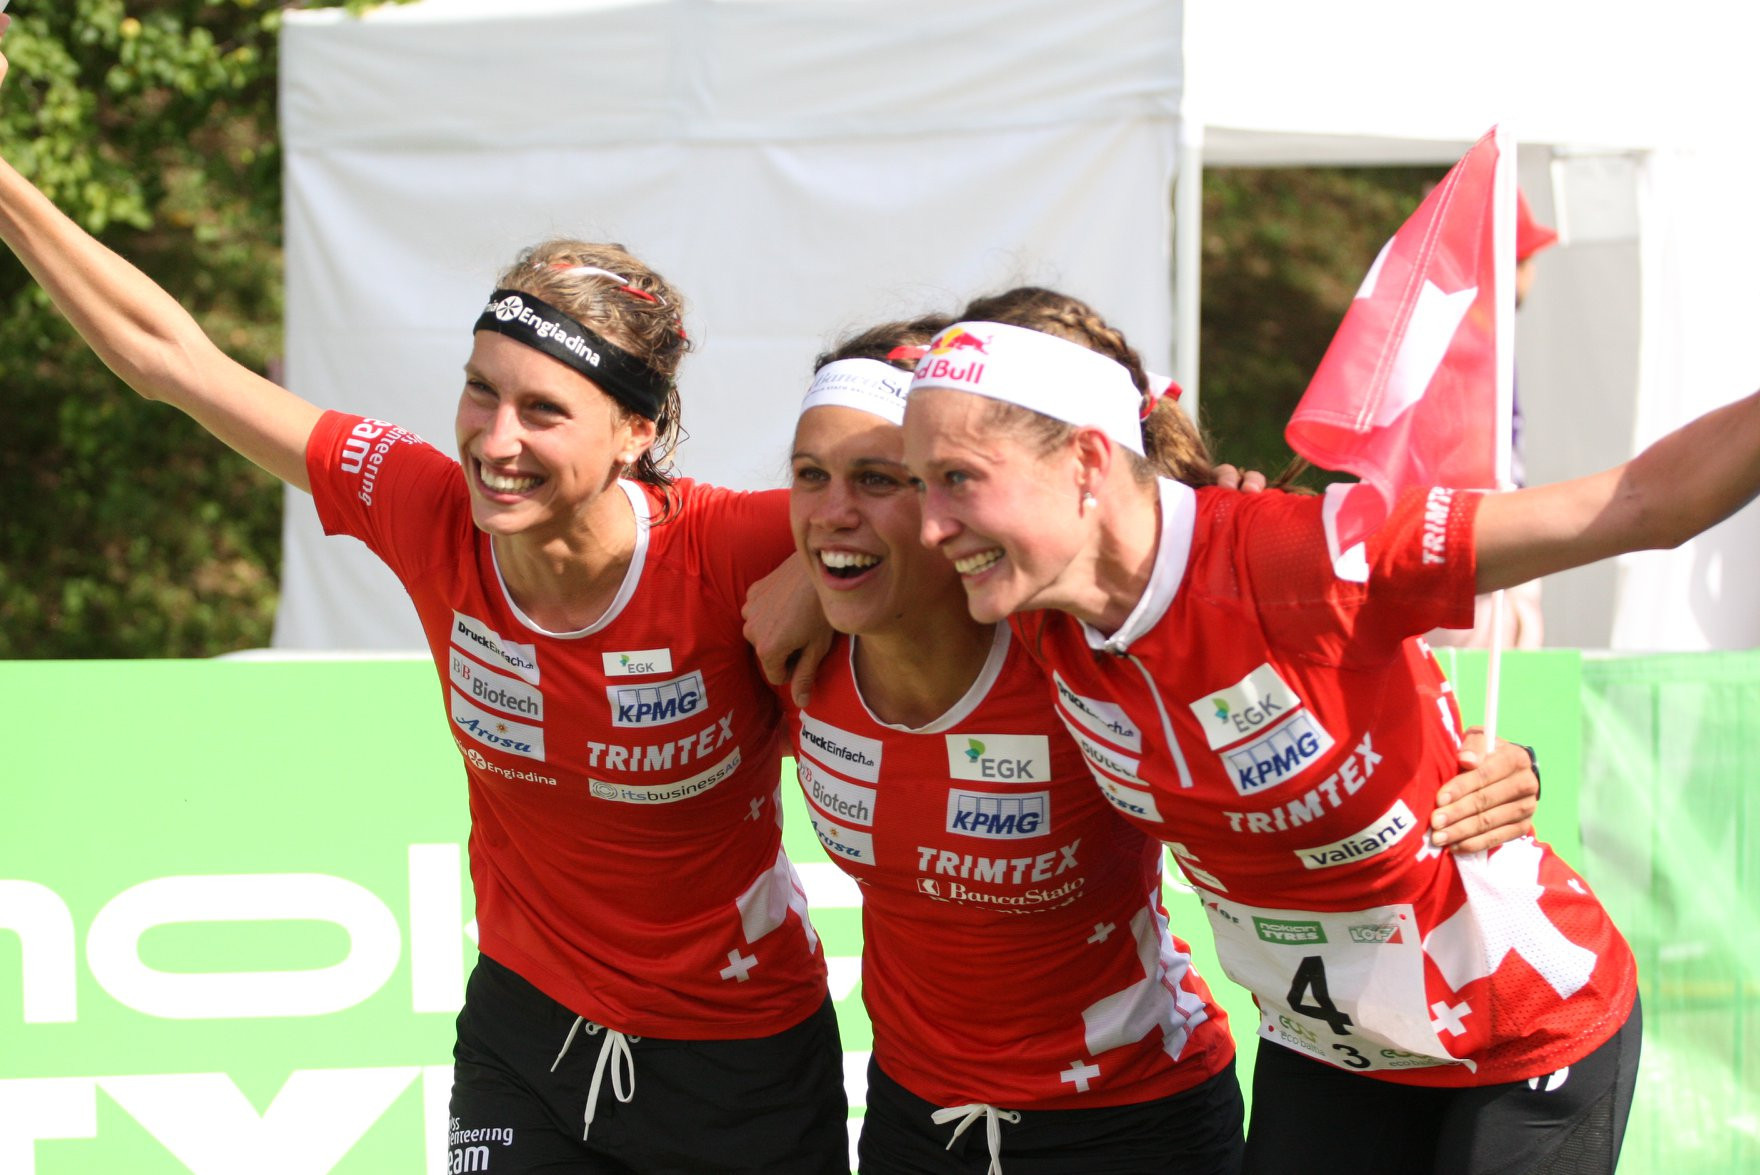 Switzerland and Norway enjoy relay wins at World Orienteering Championships